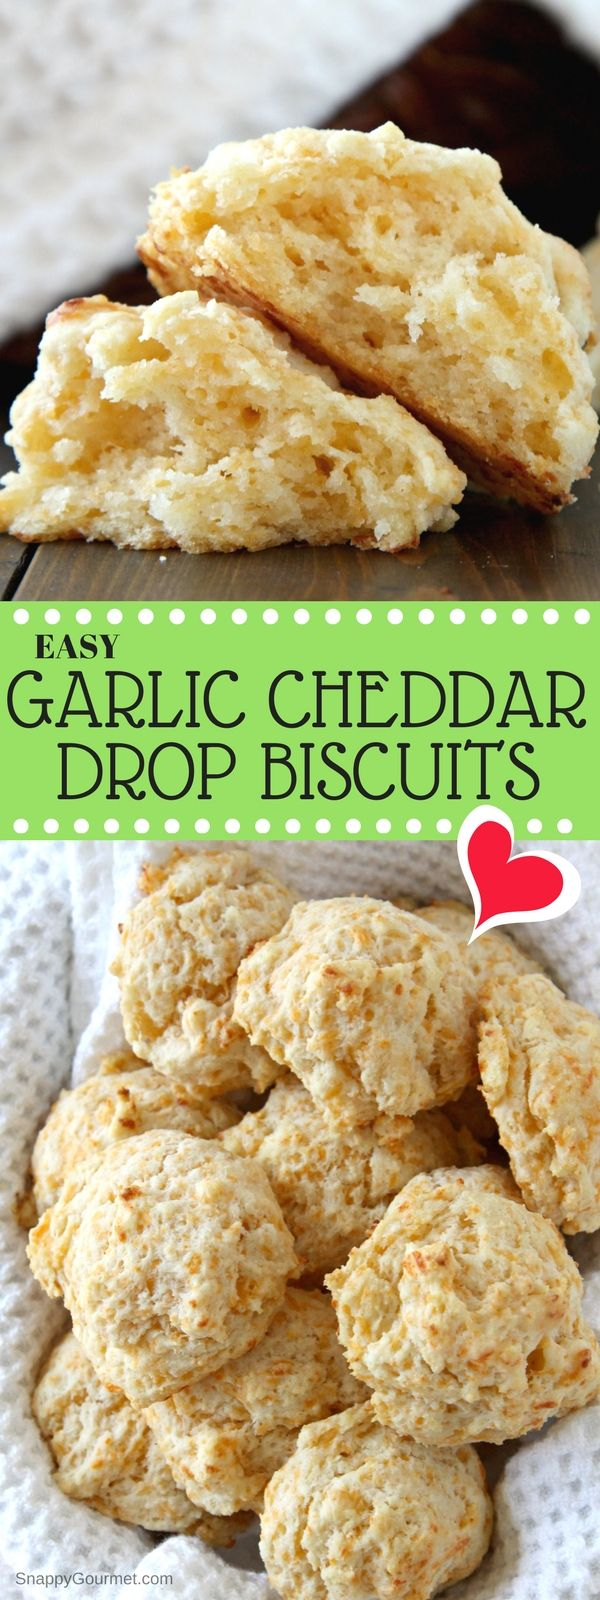 GARLIC CHEDDAR DROP BISCUITS - easy homemade biscuit recipe and from scratch copycat Red Lobster biscuits! SnappyGourmet.com #Recipe #Bread #Biscuits #Copycat